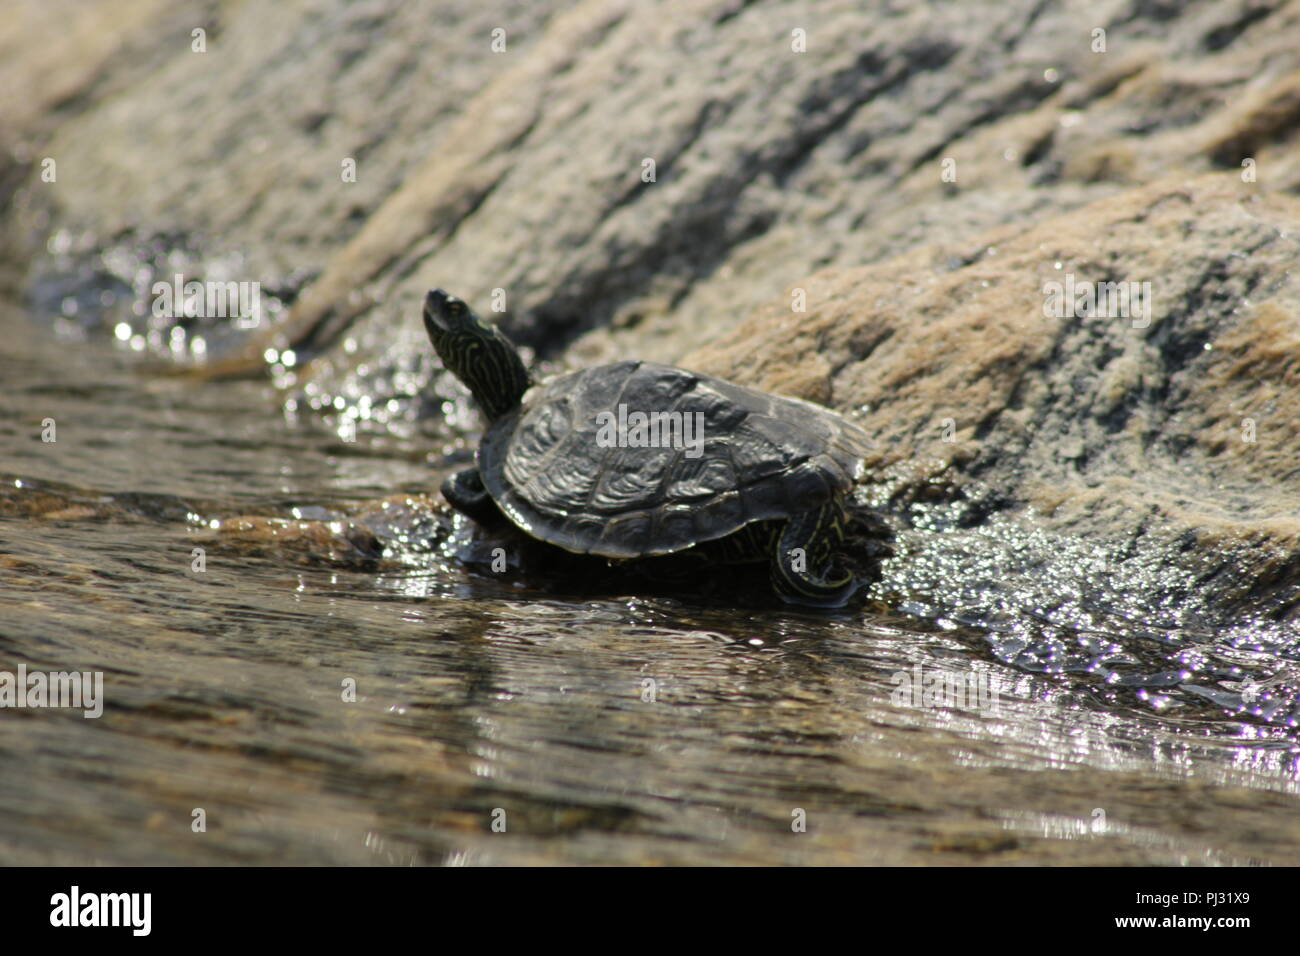 Northern Map Turtle stretched out by the edge of the water basking in the sun. Georgian bay, Canada - Stock Image